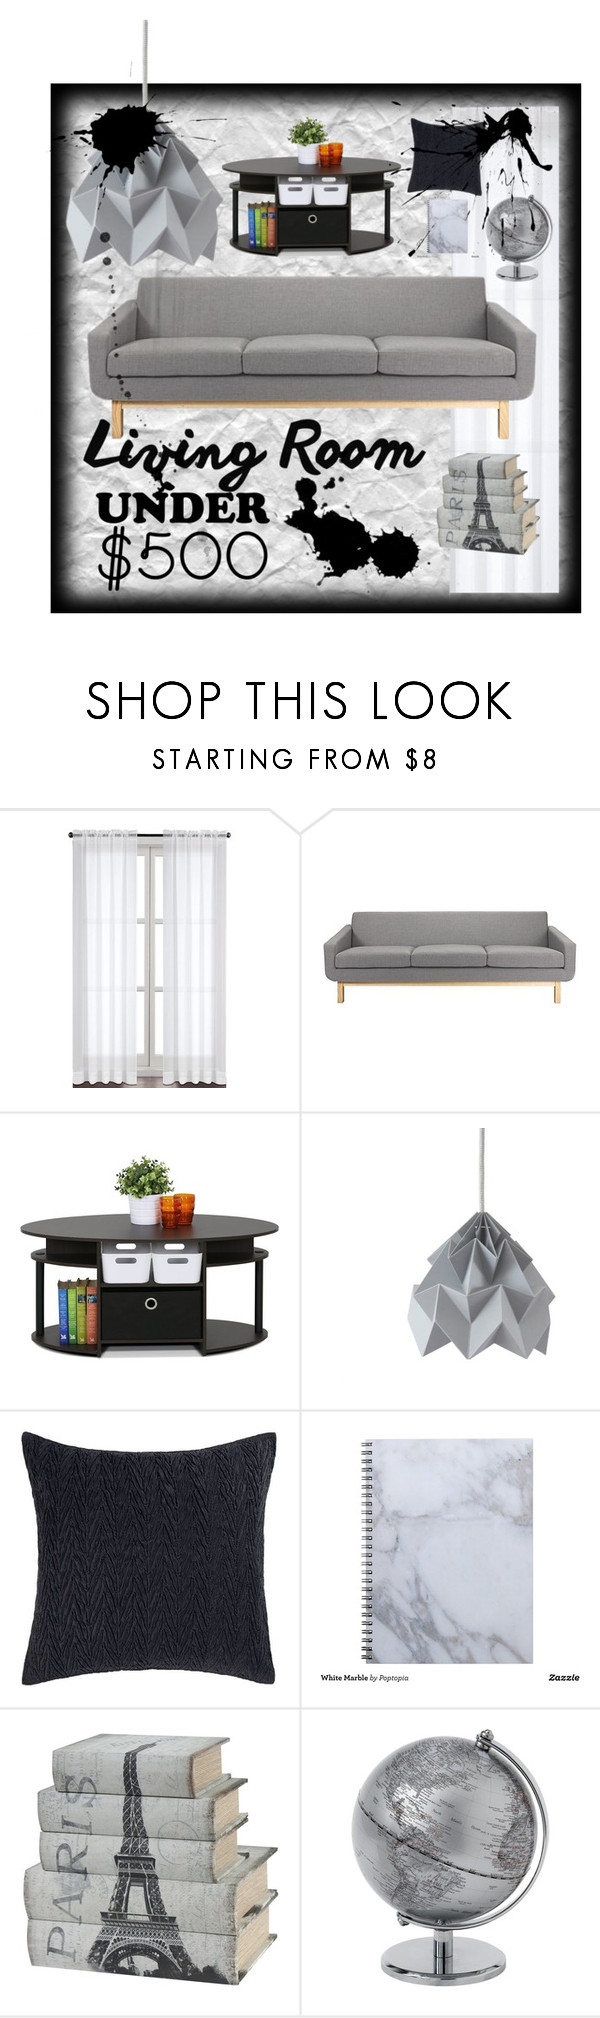 """Grey Paris"" by neverendingorphidian ❤ liked on Polyvore featuring interior, interiors, interior design, home, home decor, interior decorating, Furinno, Betsey Johnson, livingroom and under500"